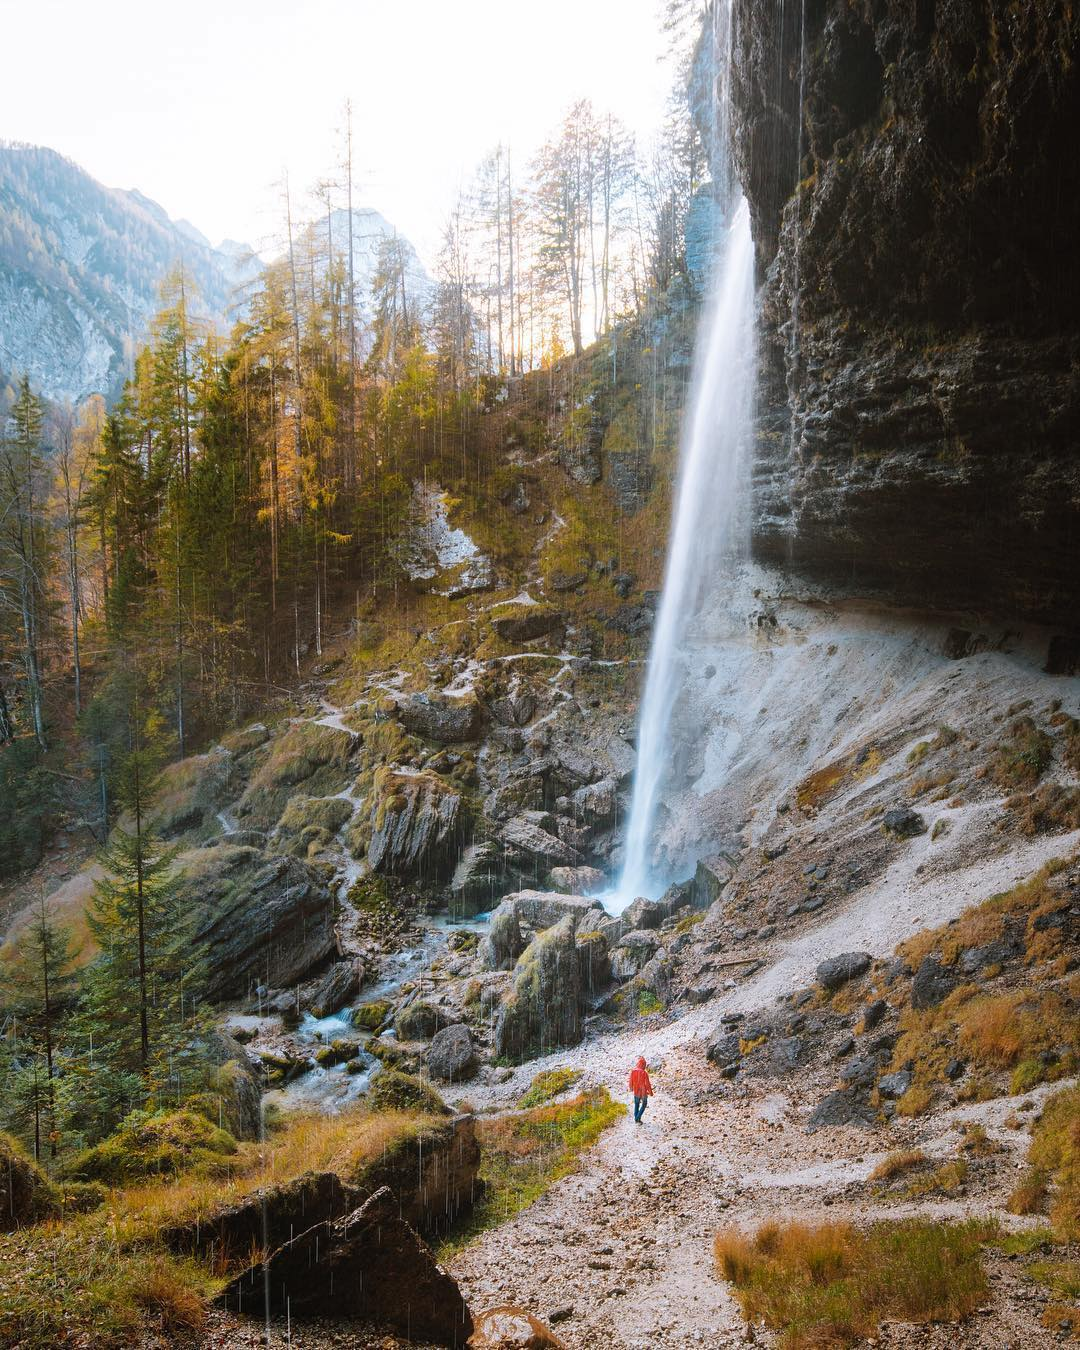 Nature - the most impressive creator. . These refreshing moments when those tiny water drops in the air embrace you.  Peričnik waterfall in Triglav National Park is a perfect spot to clear your mind and just watch this majestic amount of tiny drops.️ . . Thanks @jakefrad for sharing your photo with #ifeelsLOVEnia.